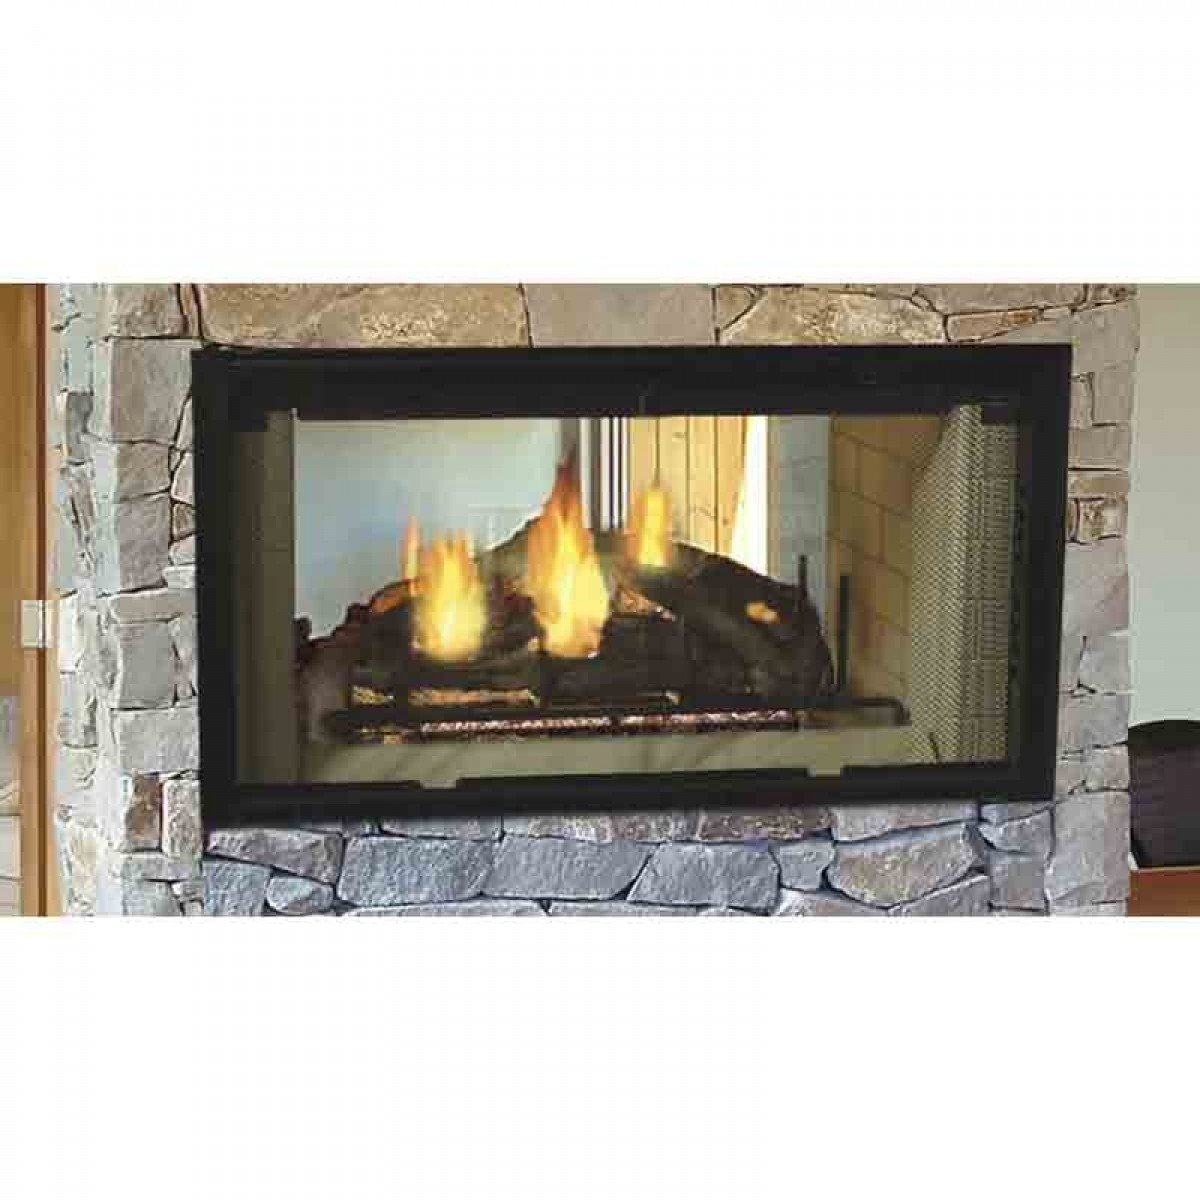 majestic designer see through wood burning fireplace